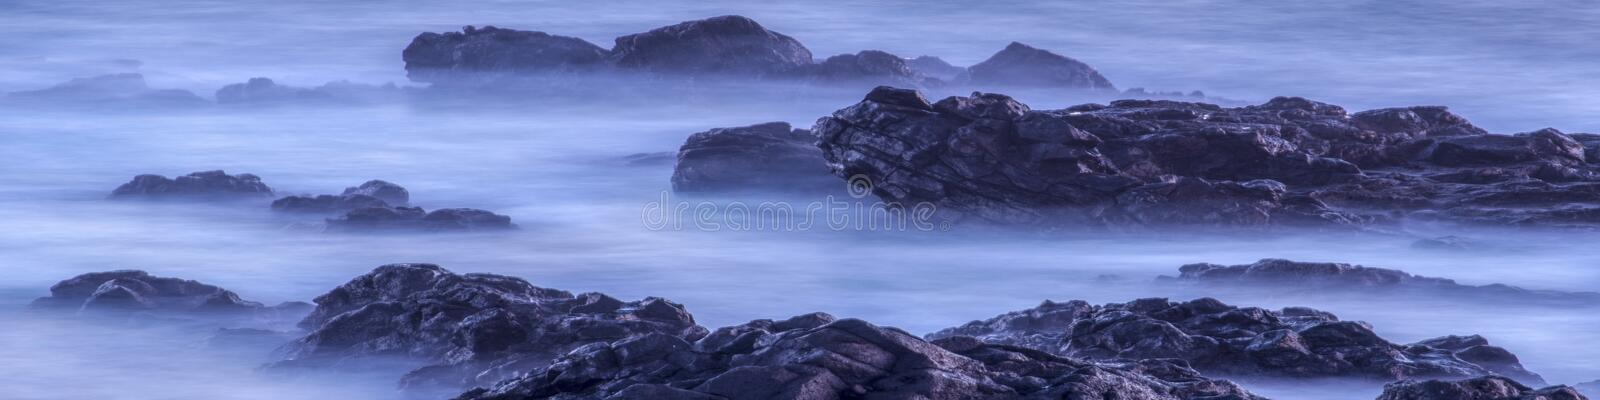 Water with rock nature photo with long exposure fog effect.Panorama or banner abstract color ocean background stock image